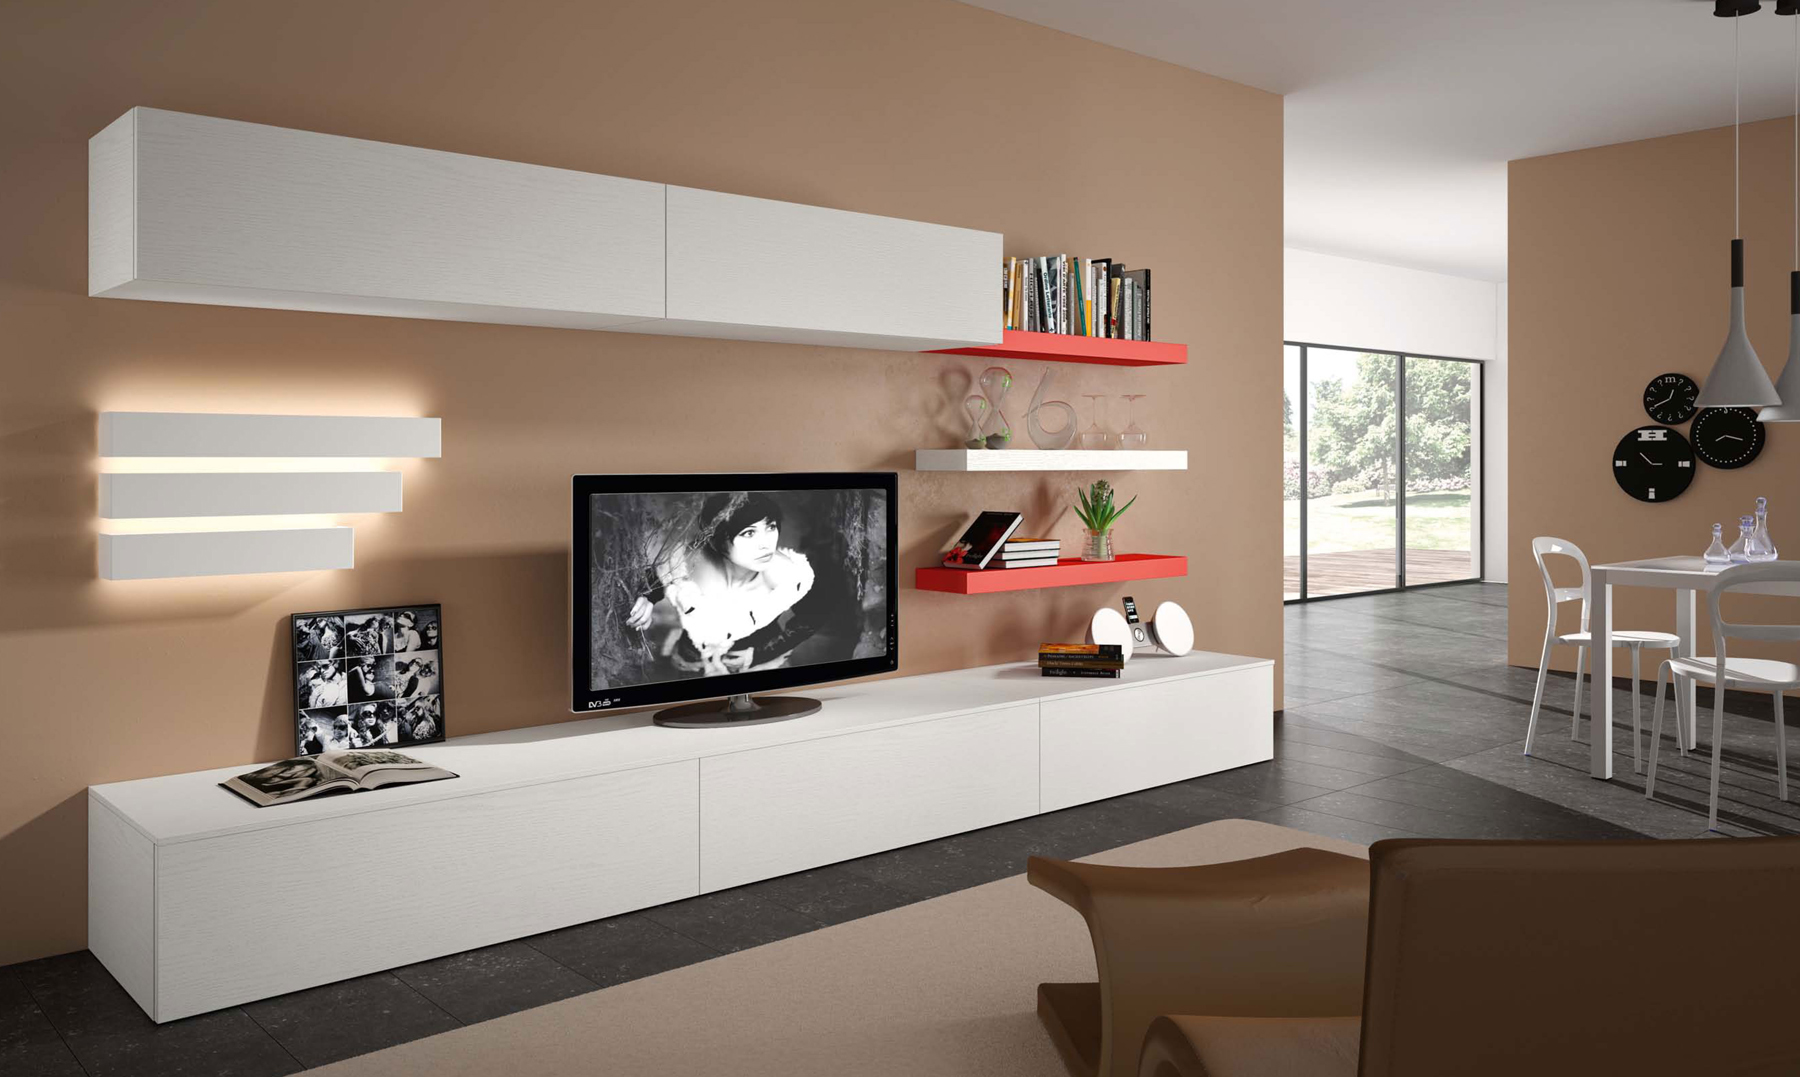 collections-sma-modern-wall-units-italy-compositon-35.jpg